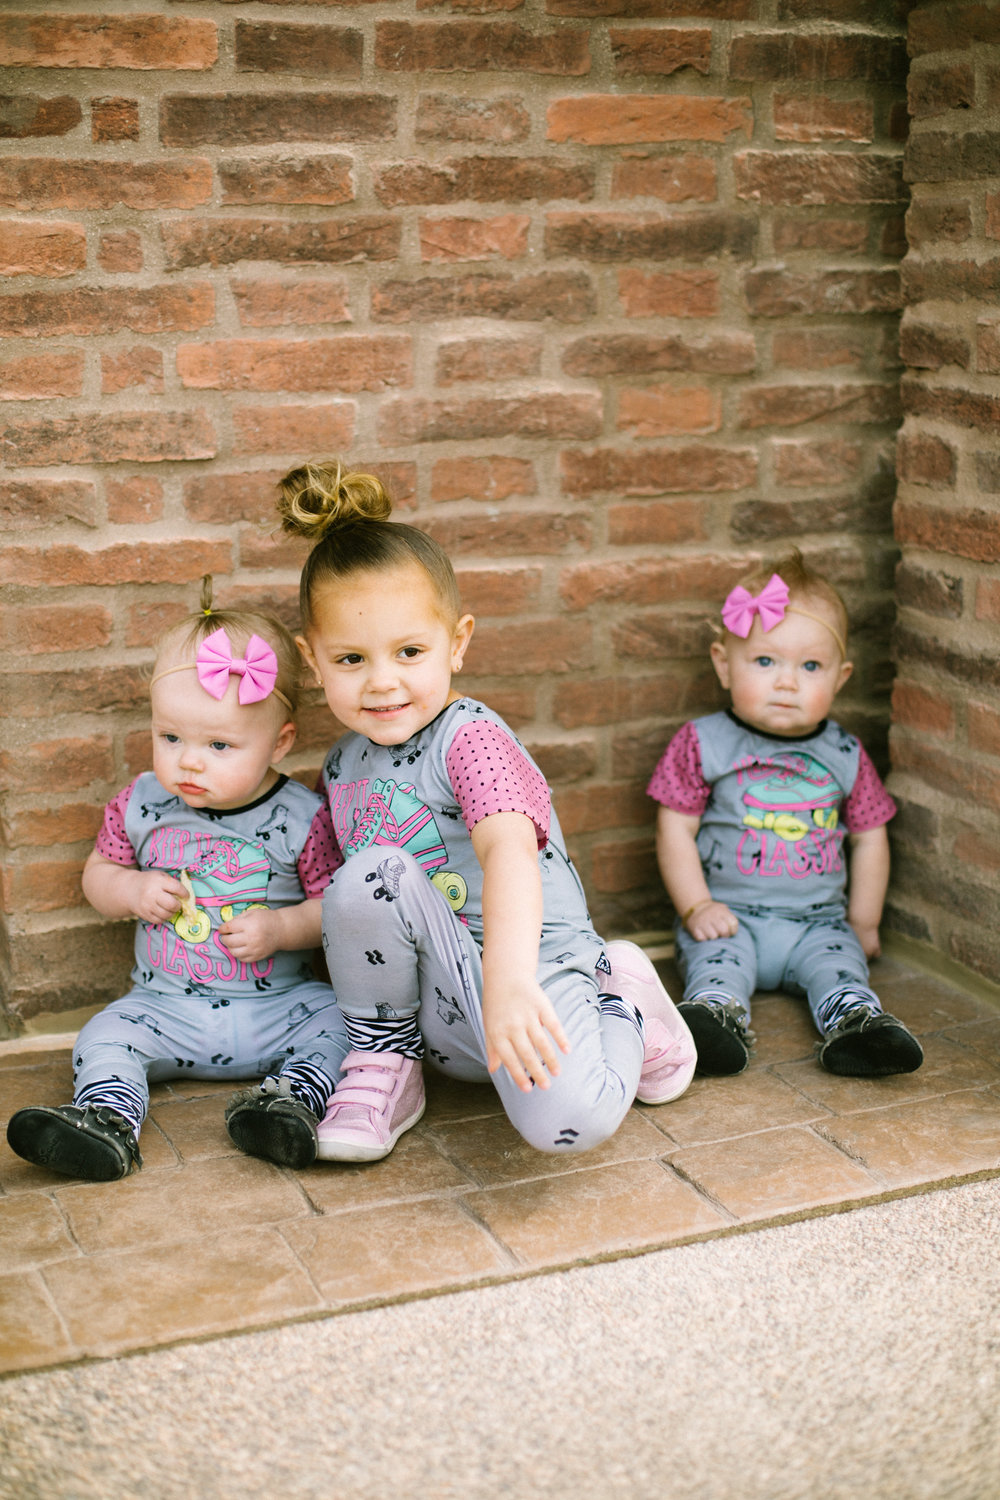 Little Girl Fashion: Spring/Summer Trends by popular Las Vegas style blogger Life of a Sister